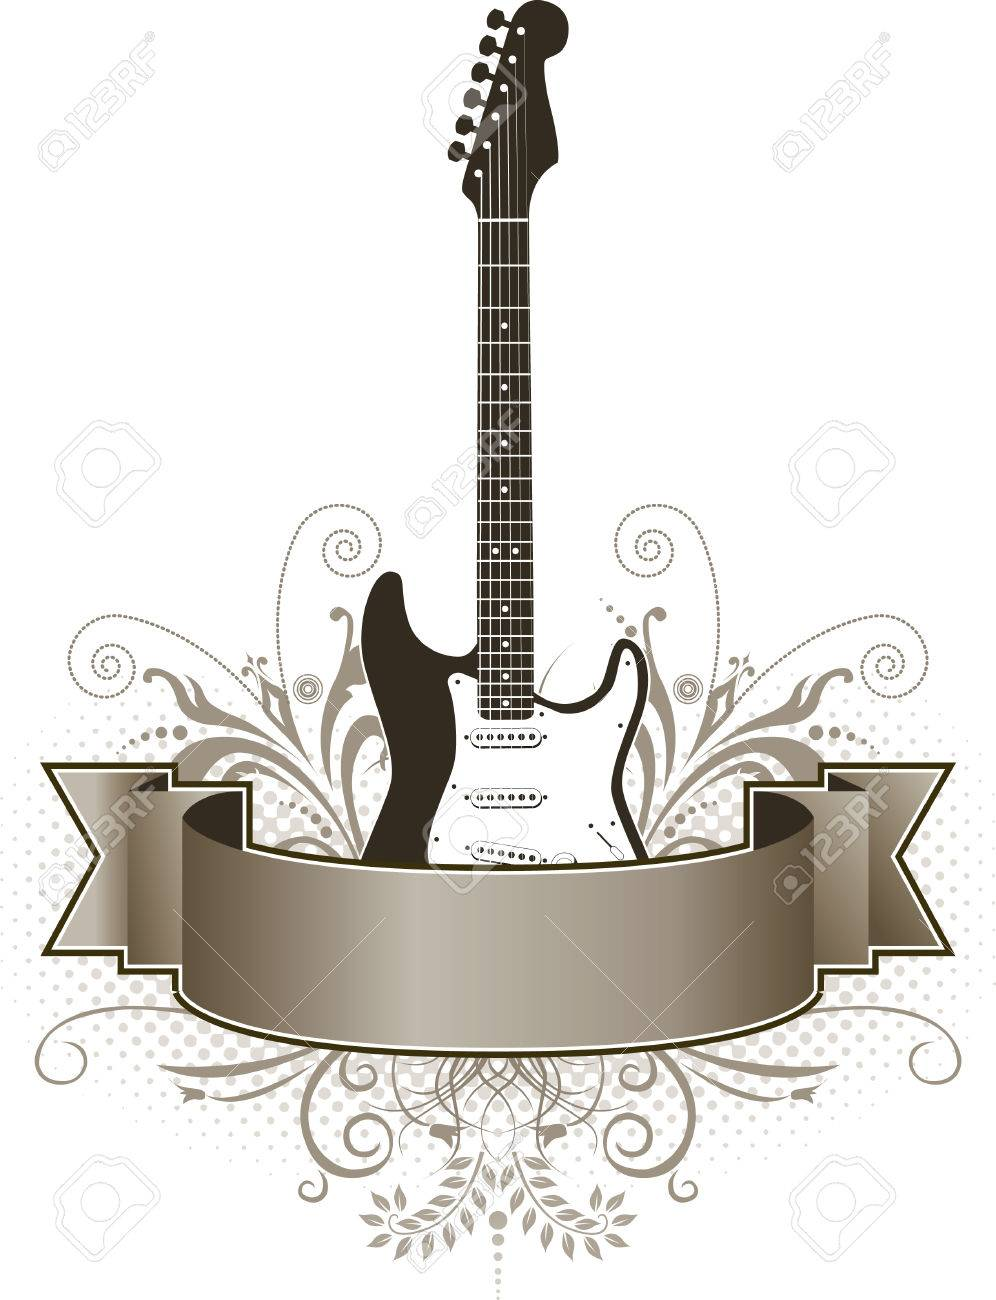 A funky, grunge guitar banner with space for text Stock Vector - 4616900